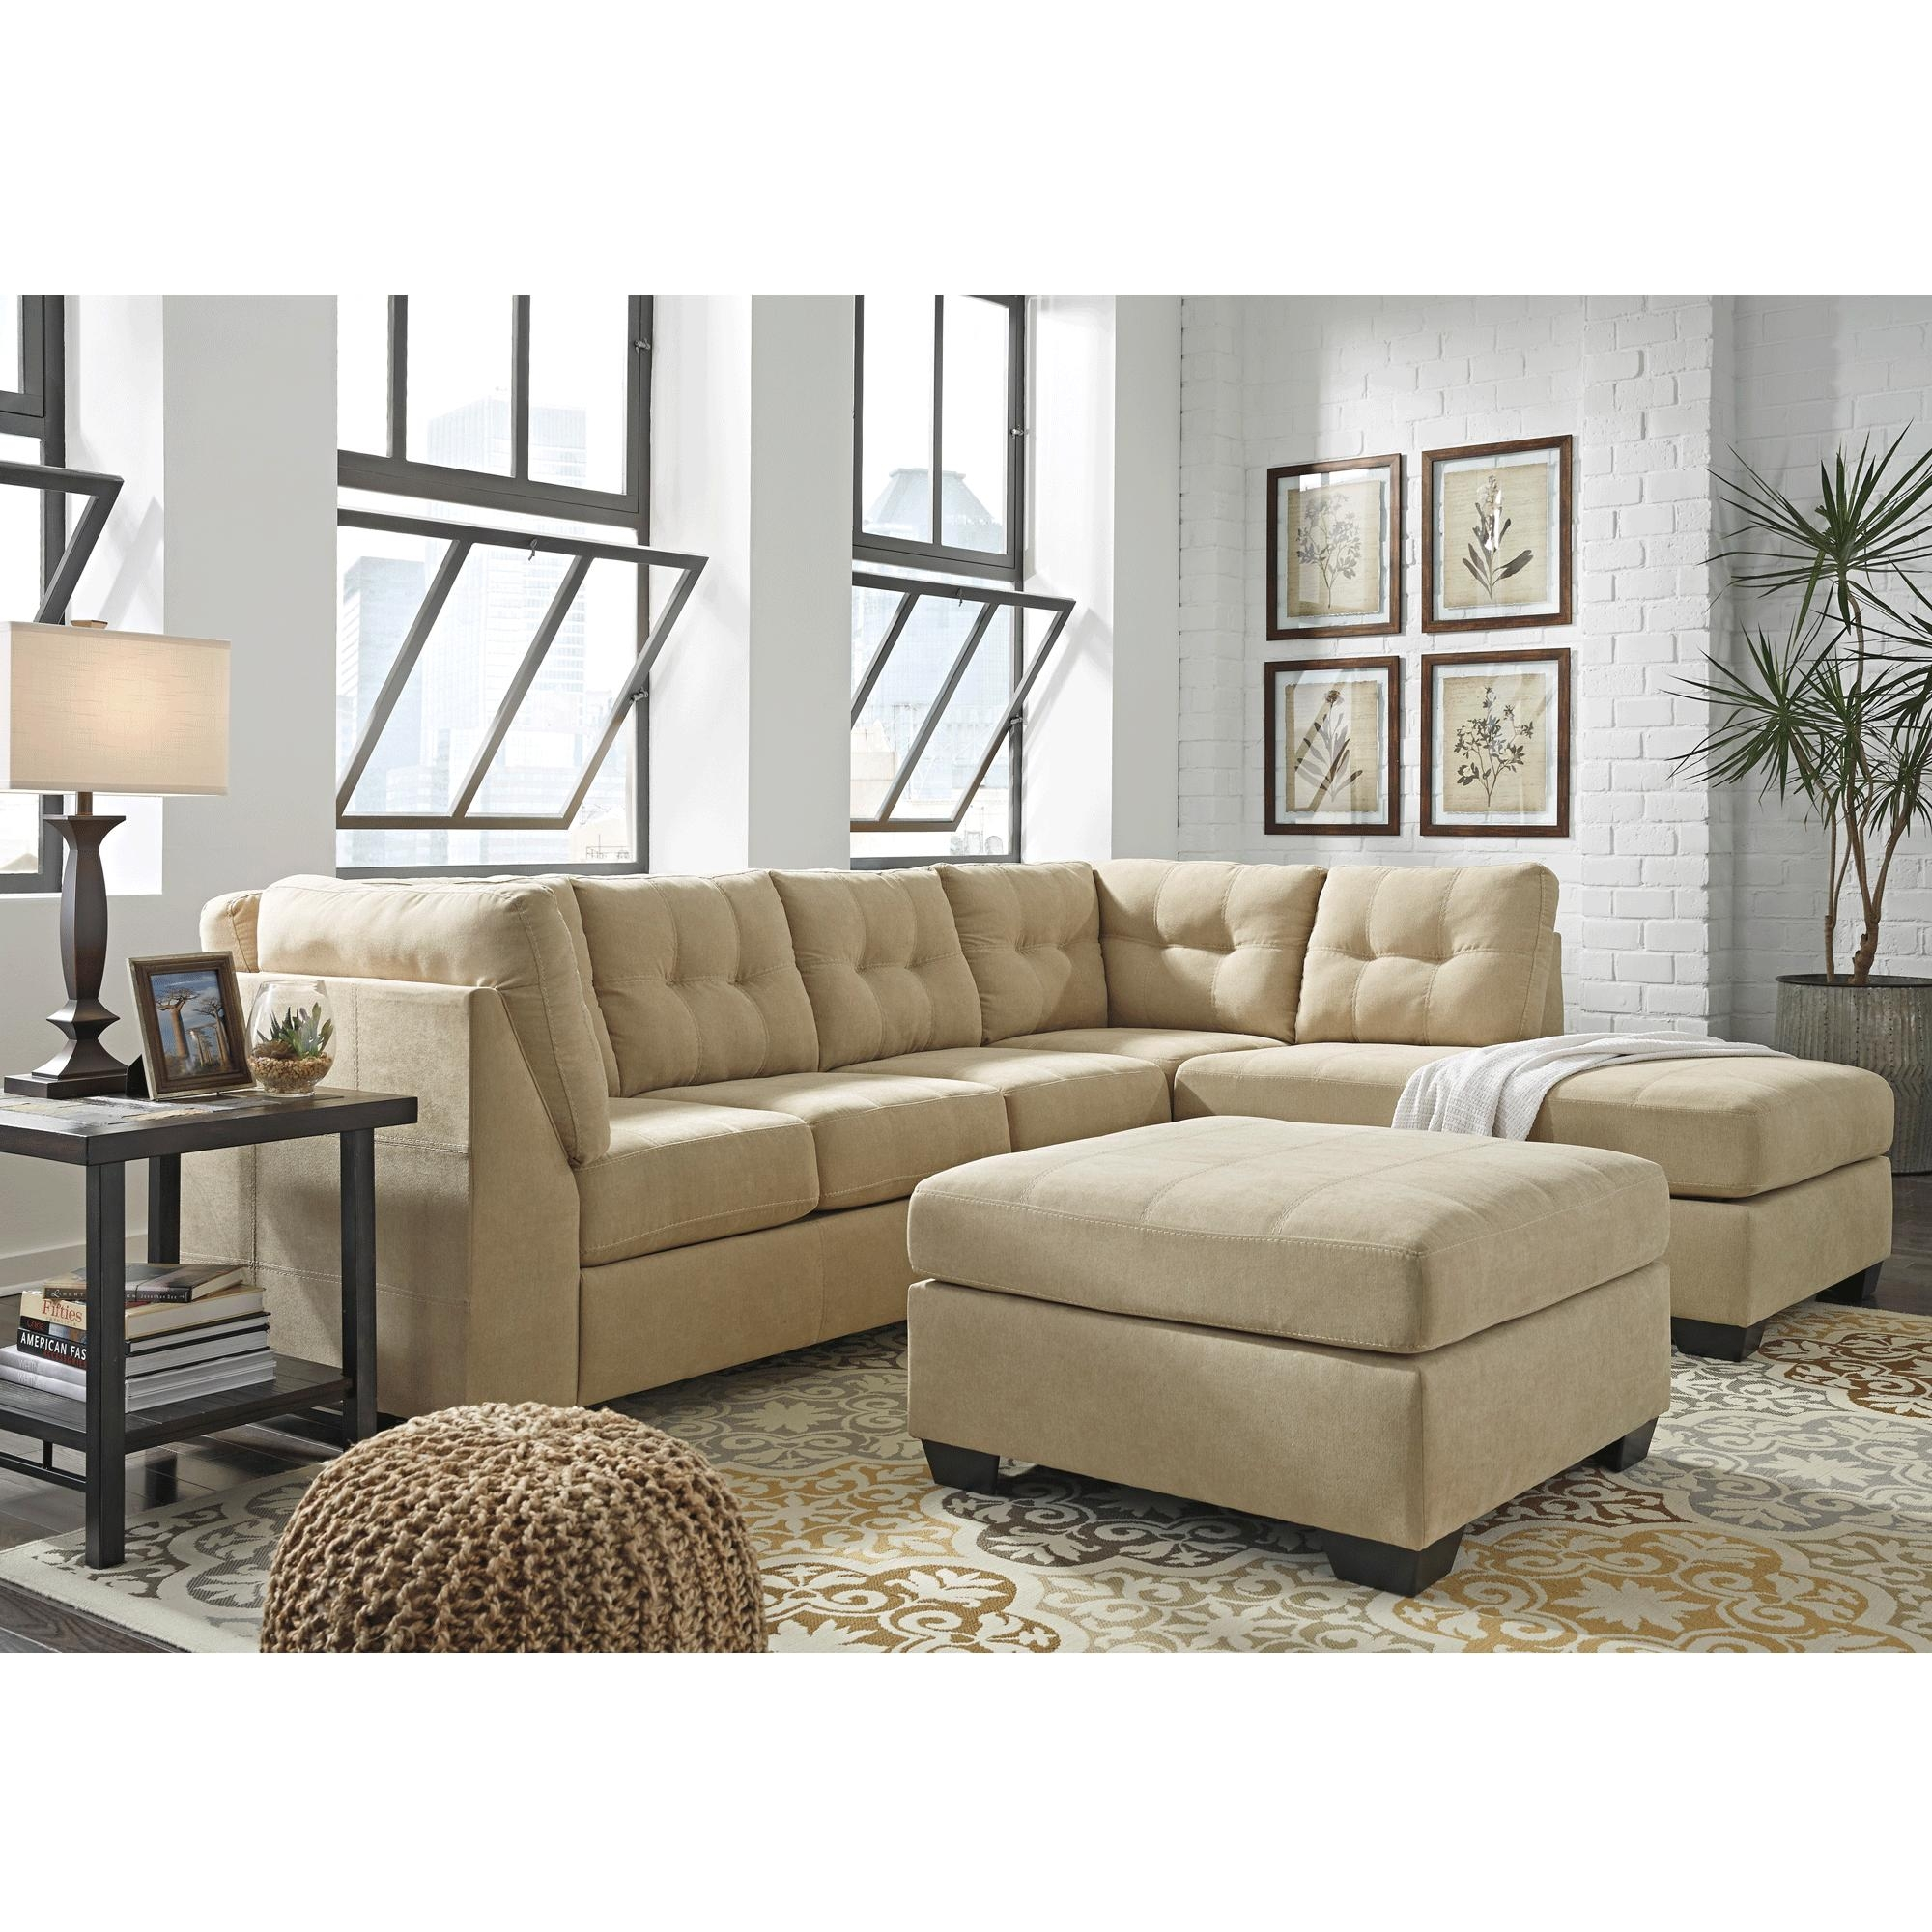 Small Sectional Sofa Clearance: Small Down Sectional Sofa